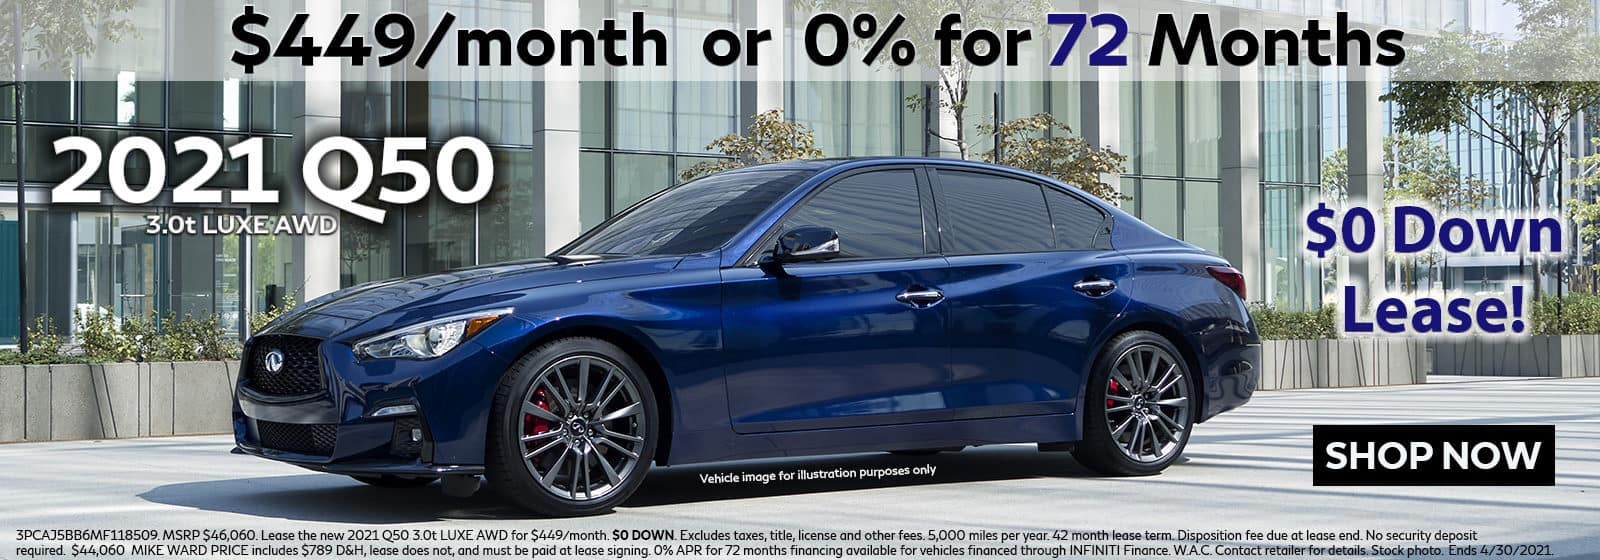 2021 INFINITI Q50 Lease or Buy Offer